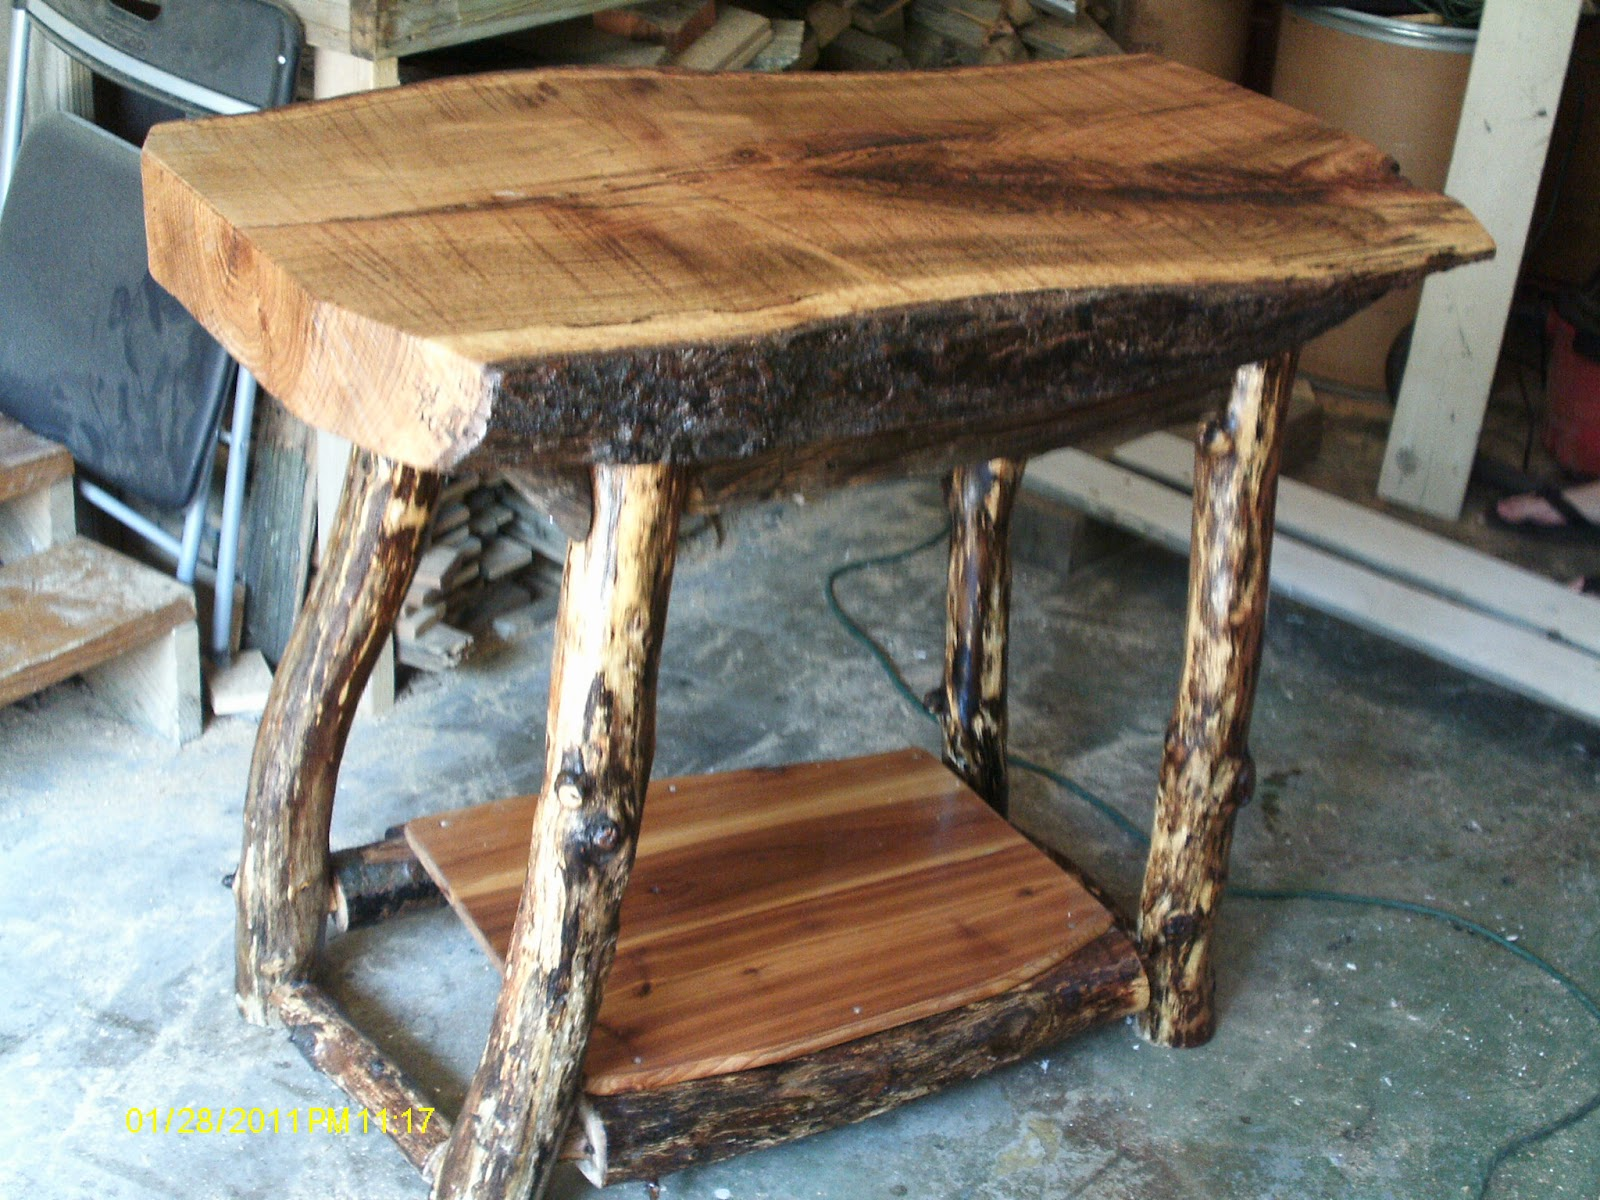 Handmade Rustic & Log Furniture: June 2012